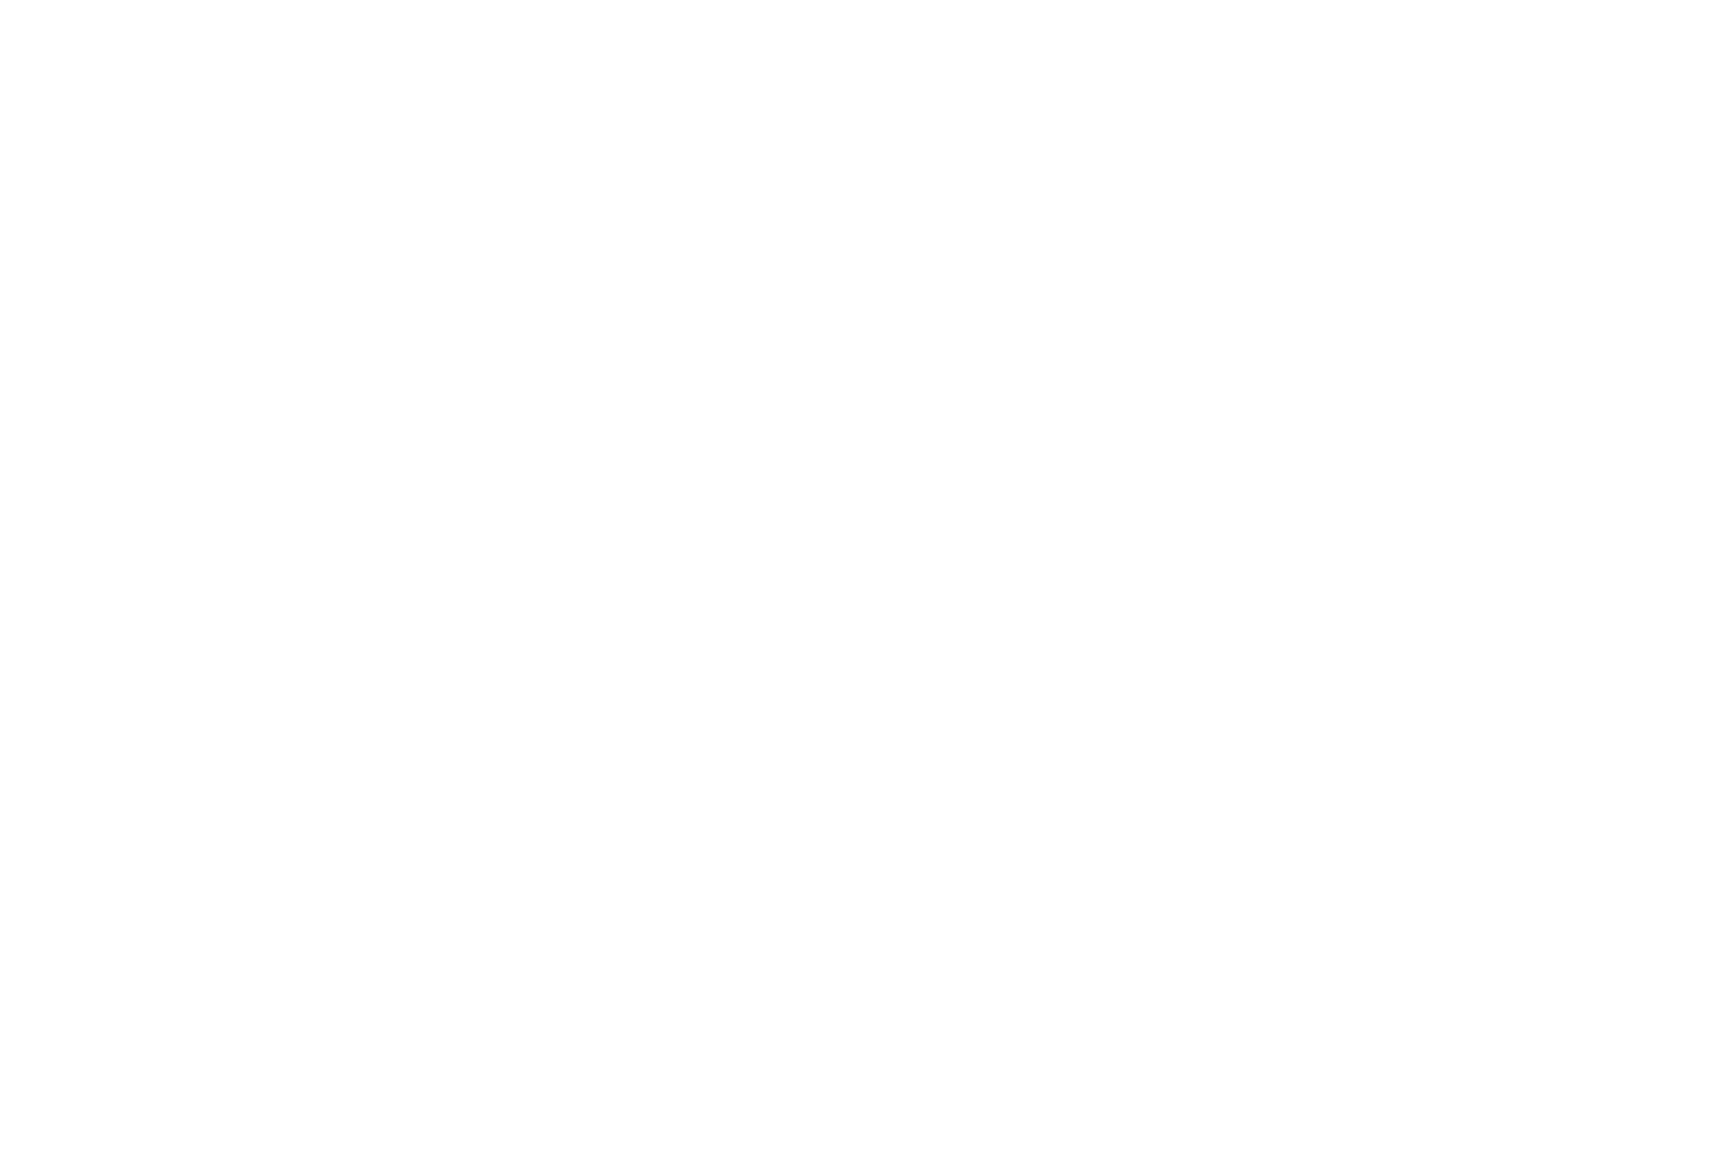 Justice Film Festival - NYC  2018.png